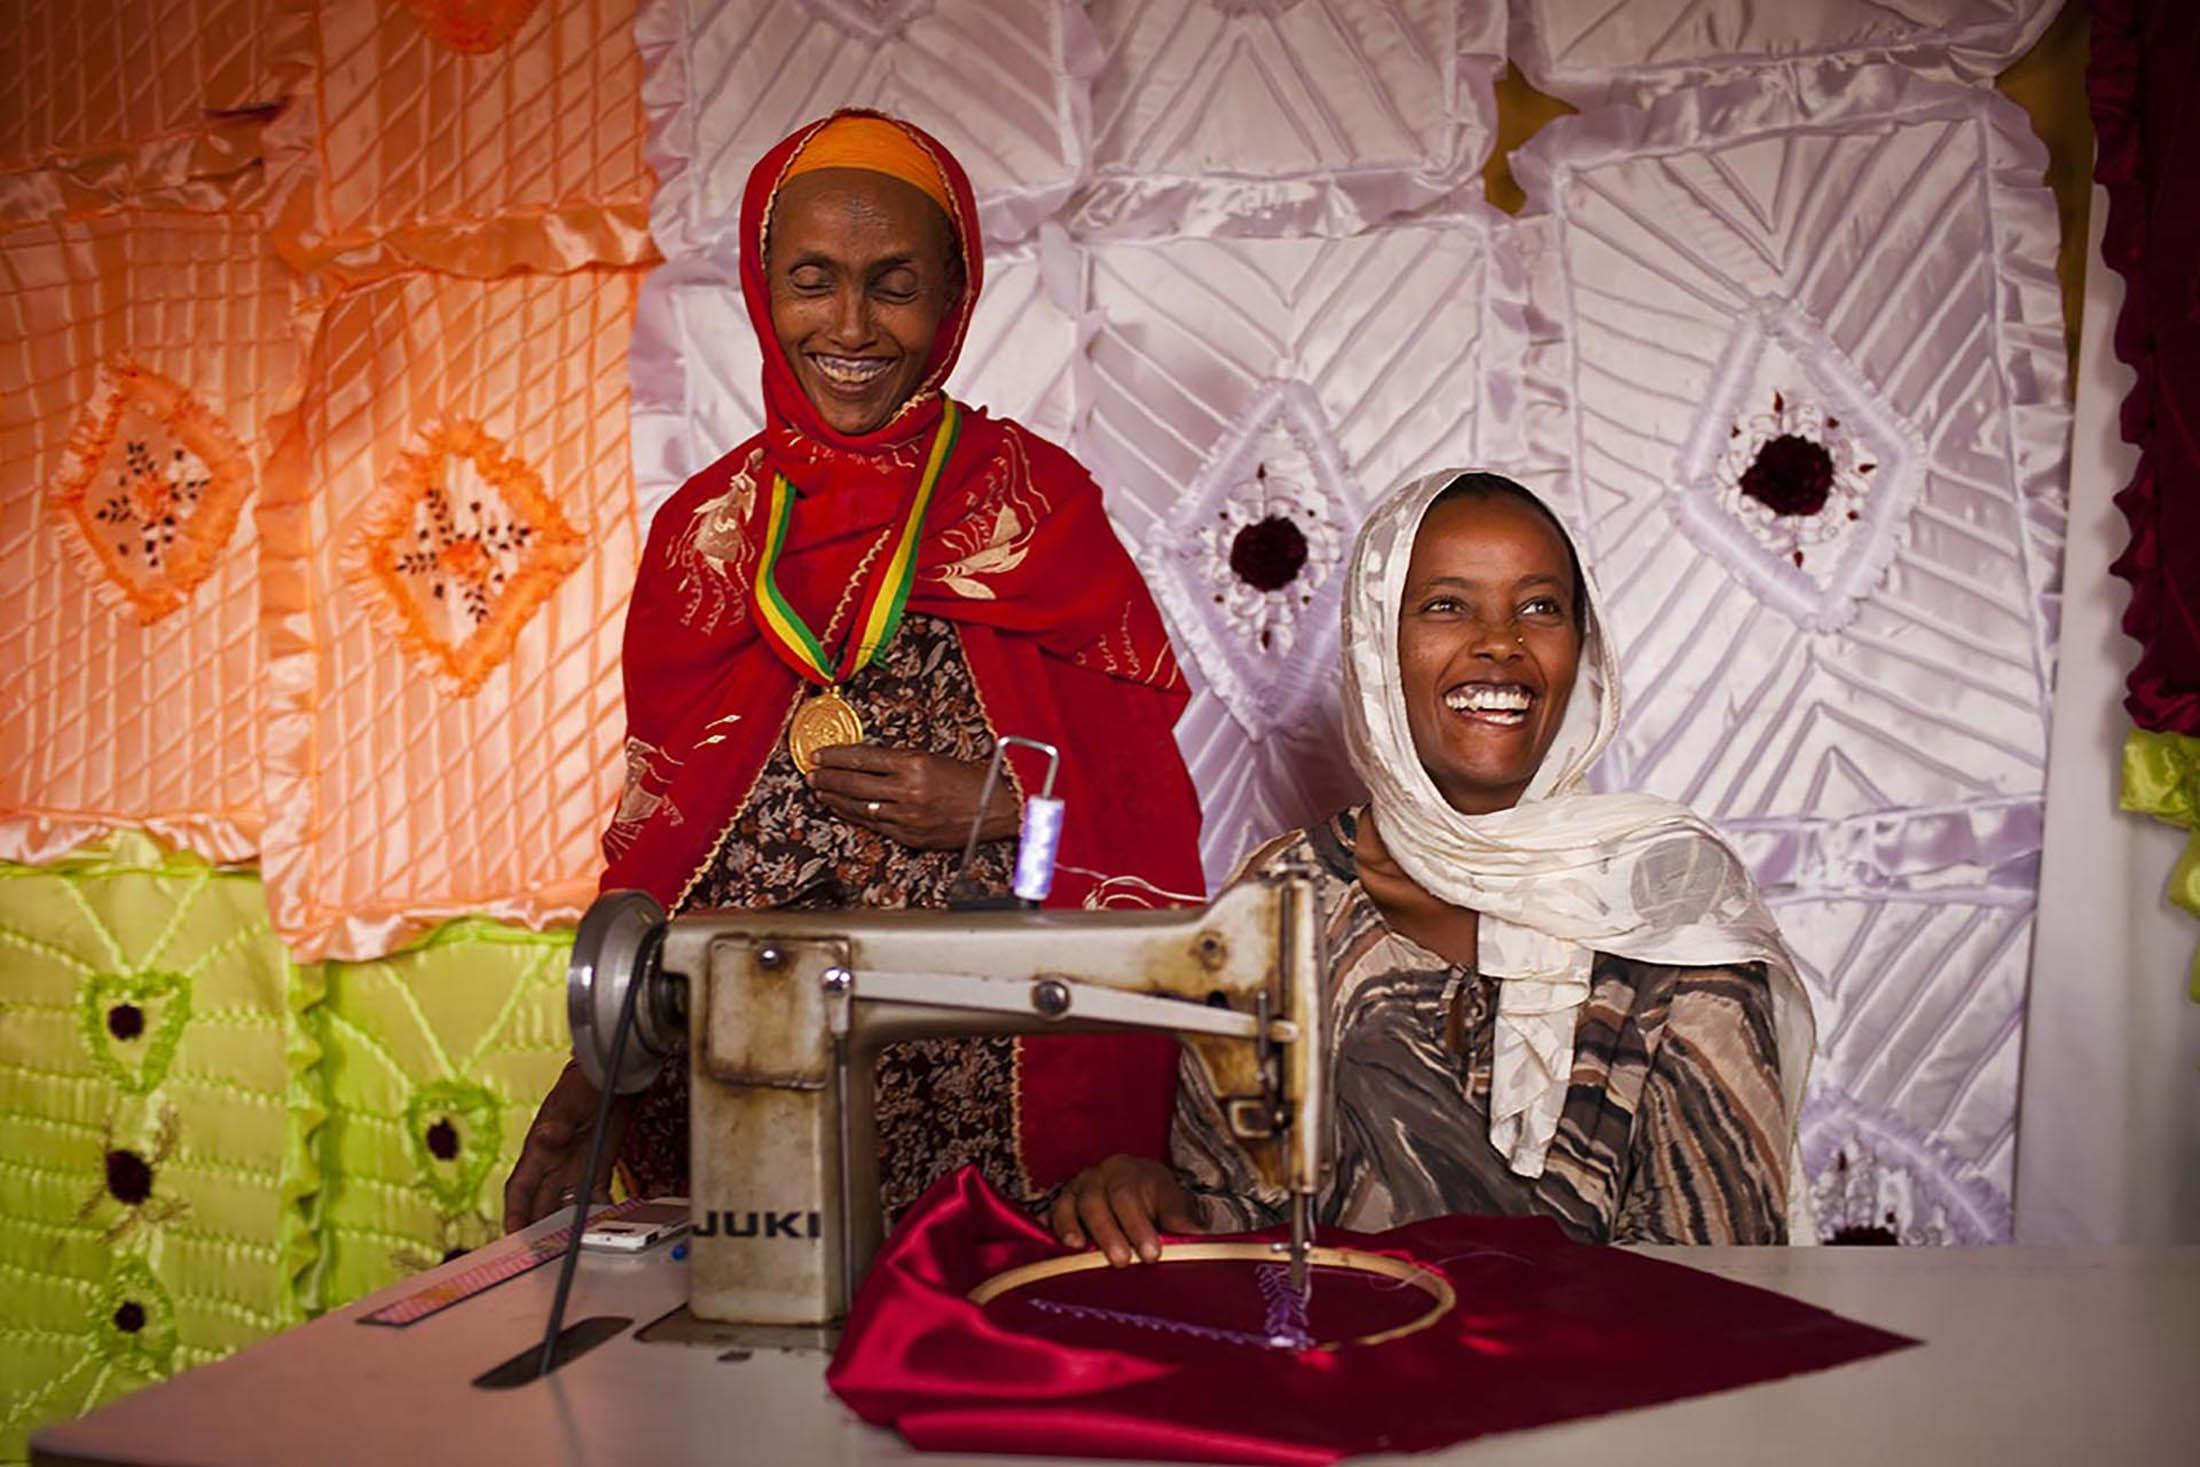 Triye Hussen, 35, at a sewing shop with her daughter Zeritu Hussen, 18, in Mender Village in Amhara region of Ethiopia, January 18, 2011. She participated in the Productive Safety Net Program (PSNP) by World Food Program (WFP) for 3 years, and won an award for her strong participation in PSNP in 2009 . The divorced mother said that her land was degraded because she did not know how to care for it. With the help of PSNP, she started using compost and new planting strategies to maintain earth fertility. After production increased, she managed to sell the seeds from her excess crops to a cooperative. With the new income, she bought livestock and two sewing machines which her daughter uses to run a sewing shop.